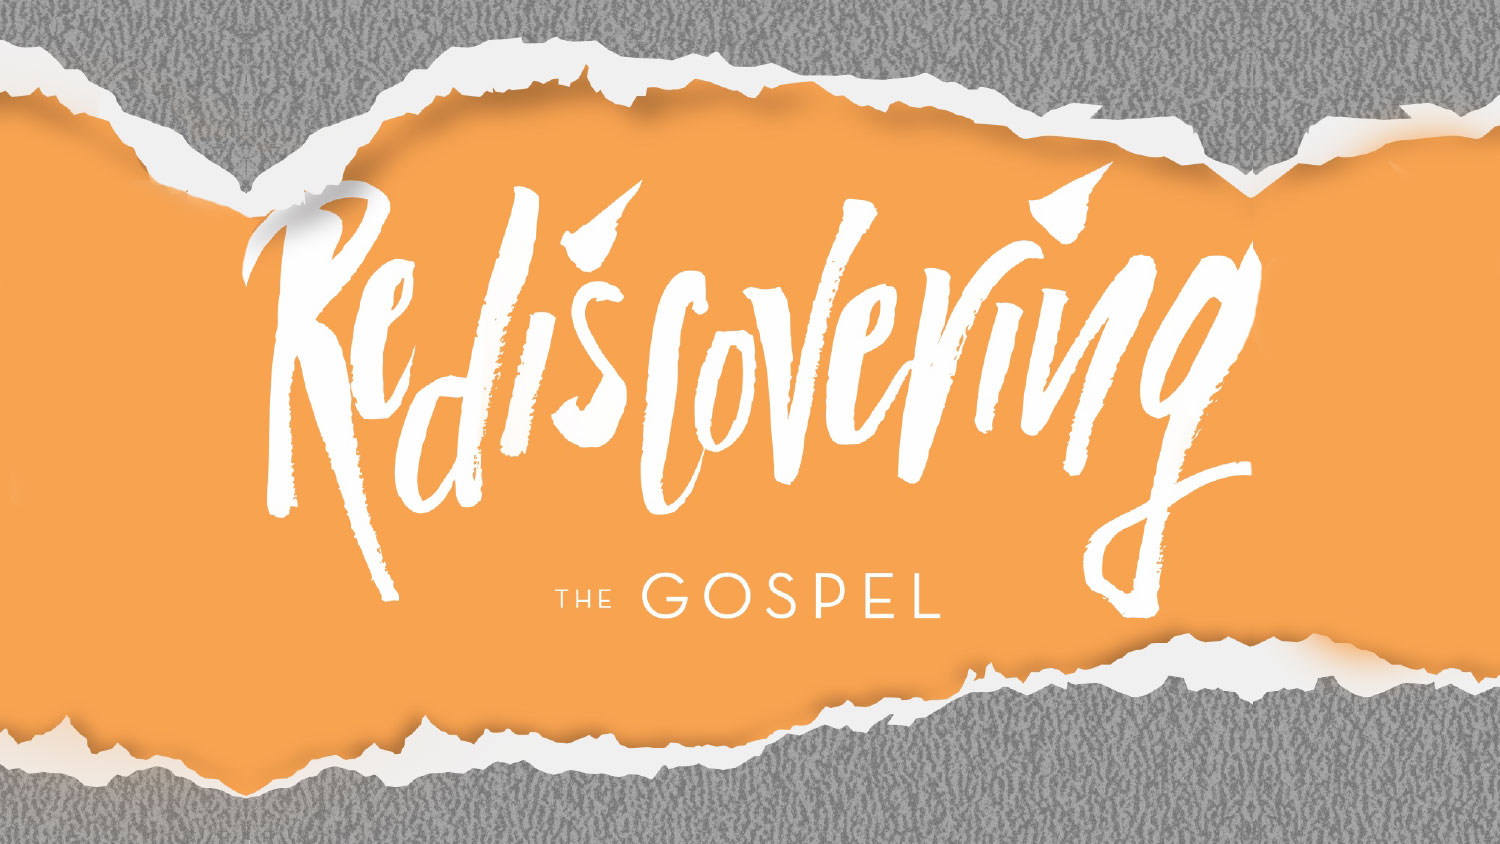 CLIC Church Melbourne Conference: Rediscovering The Gospel 27-30th June